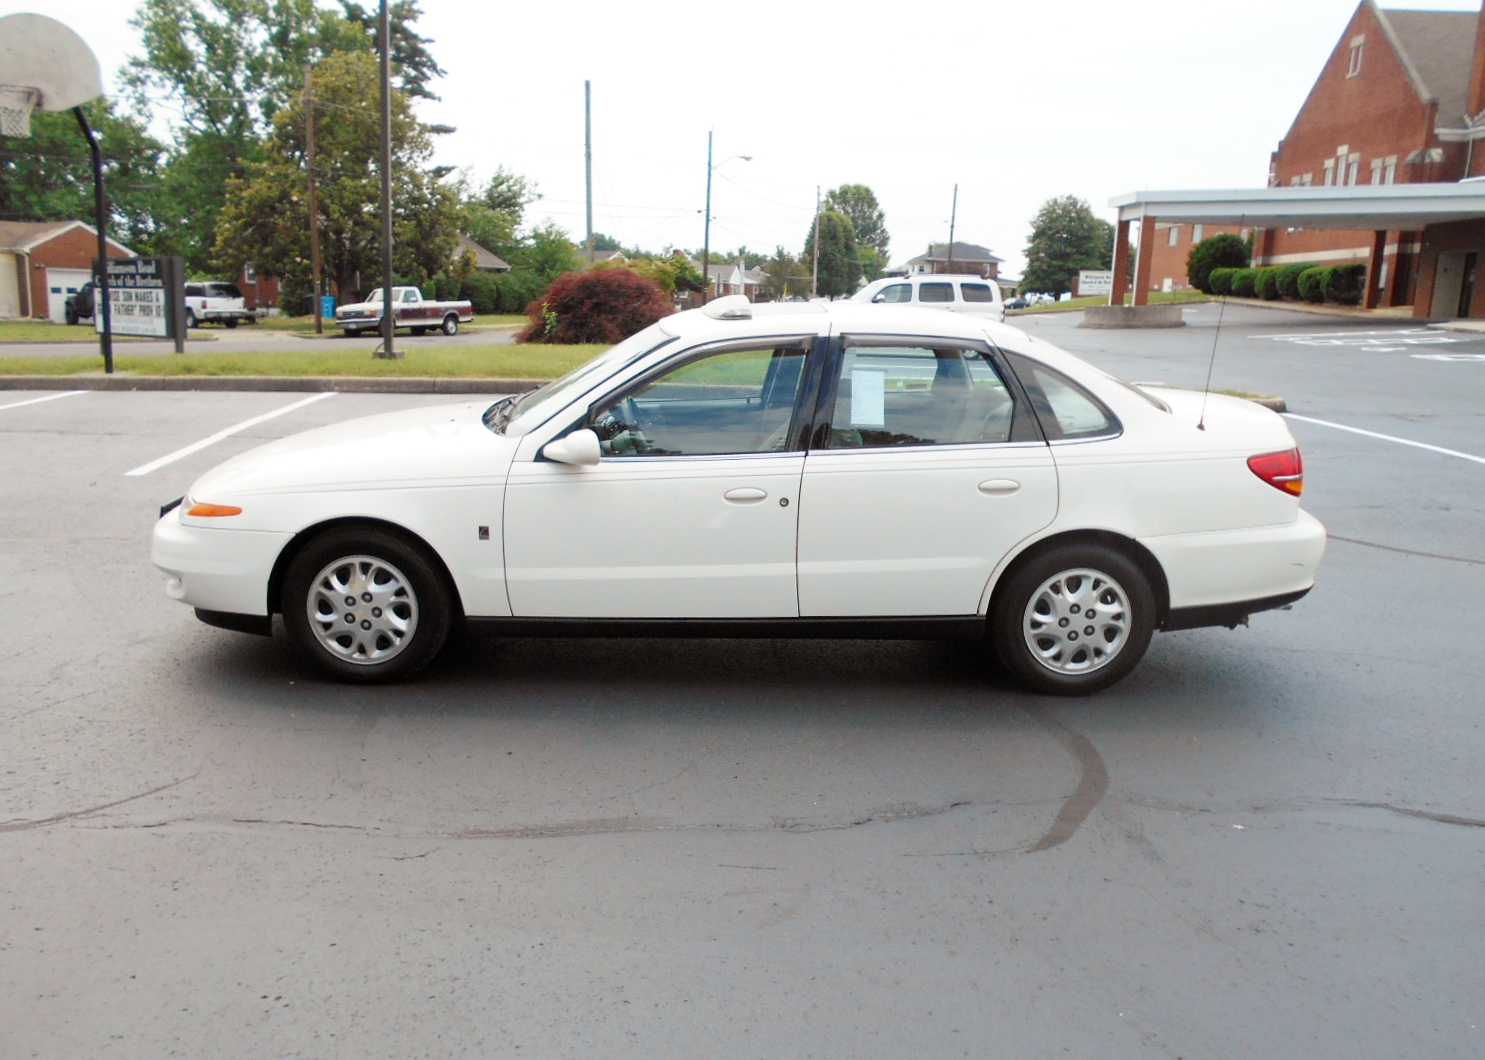 2002 Saturn L200 008 2002 Saturn L200 008 – Automobile ...